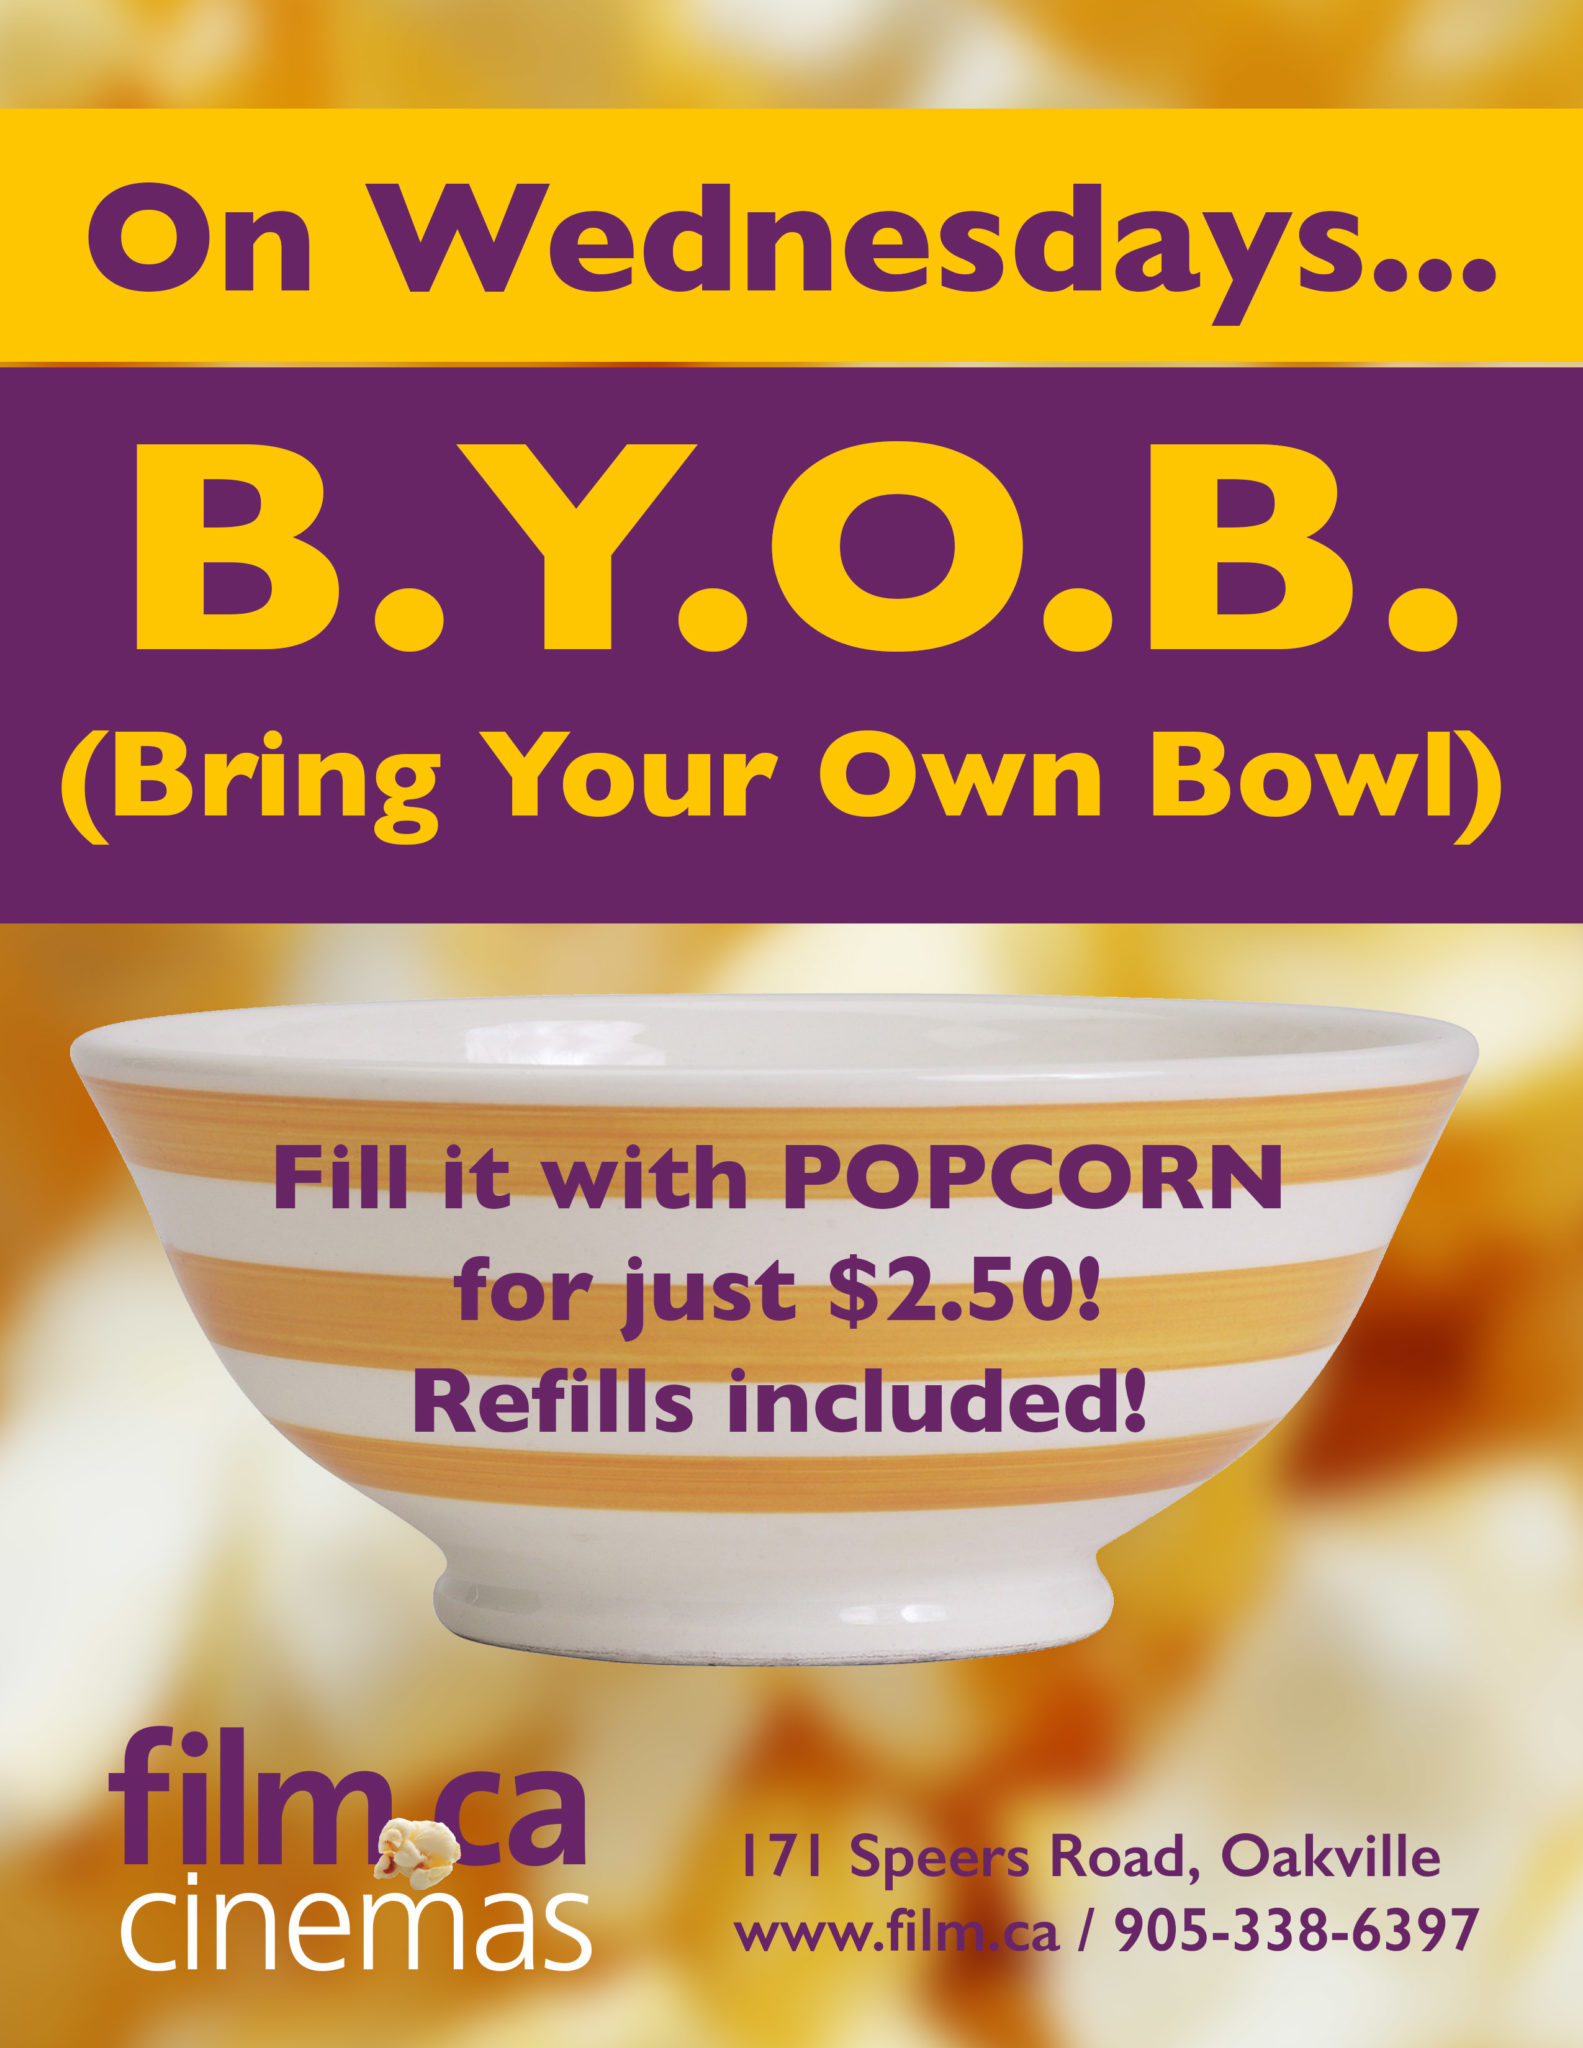 bring your own bowl